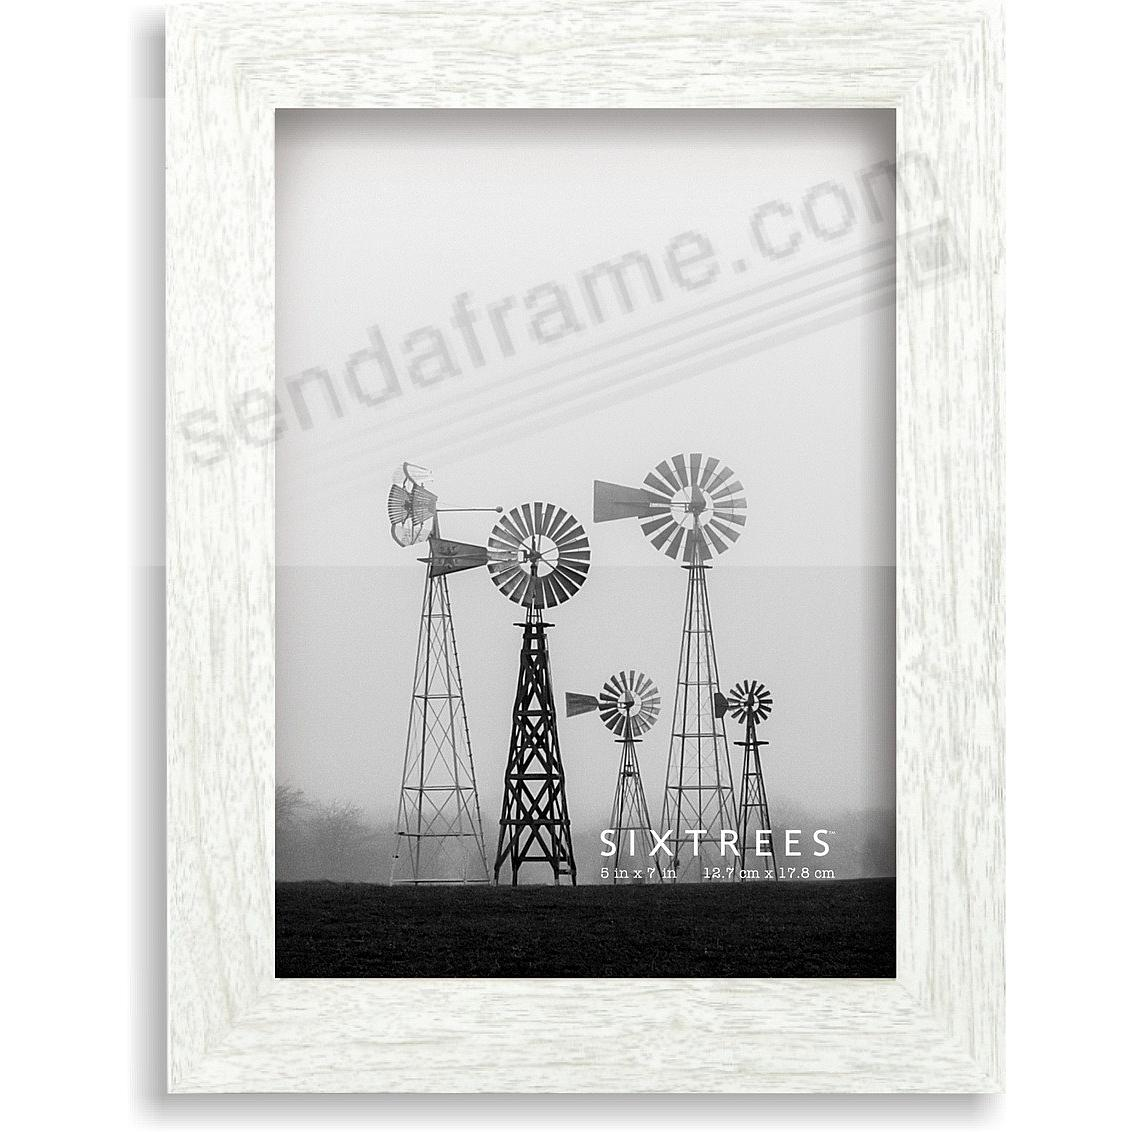 Weathered White/Grey LAWRENCE 5x7 Frame by Sixtrees®